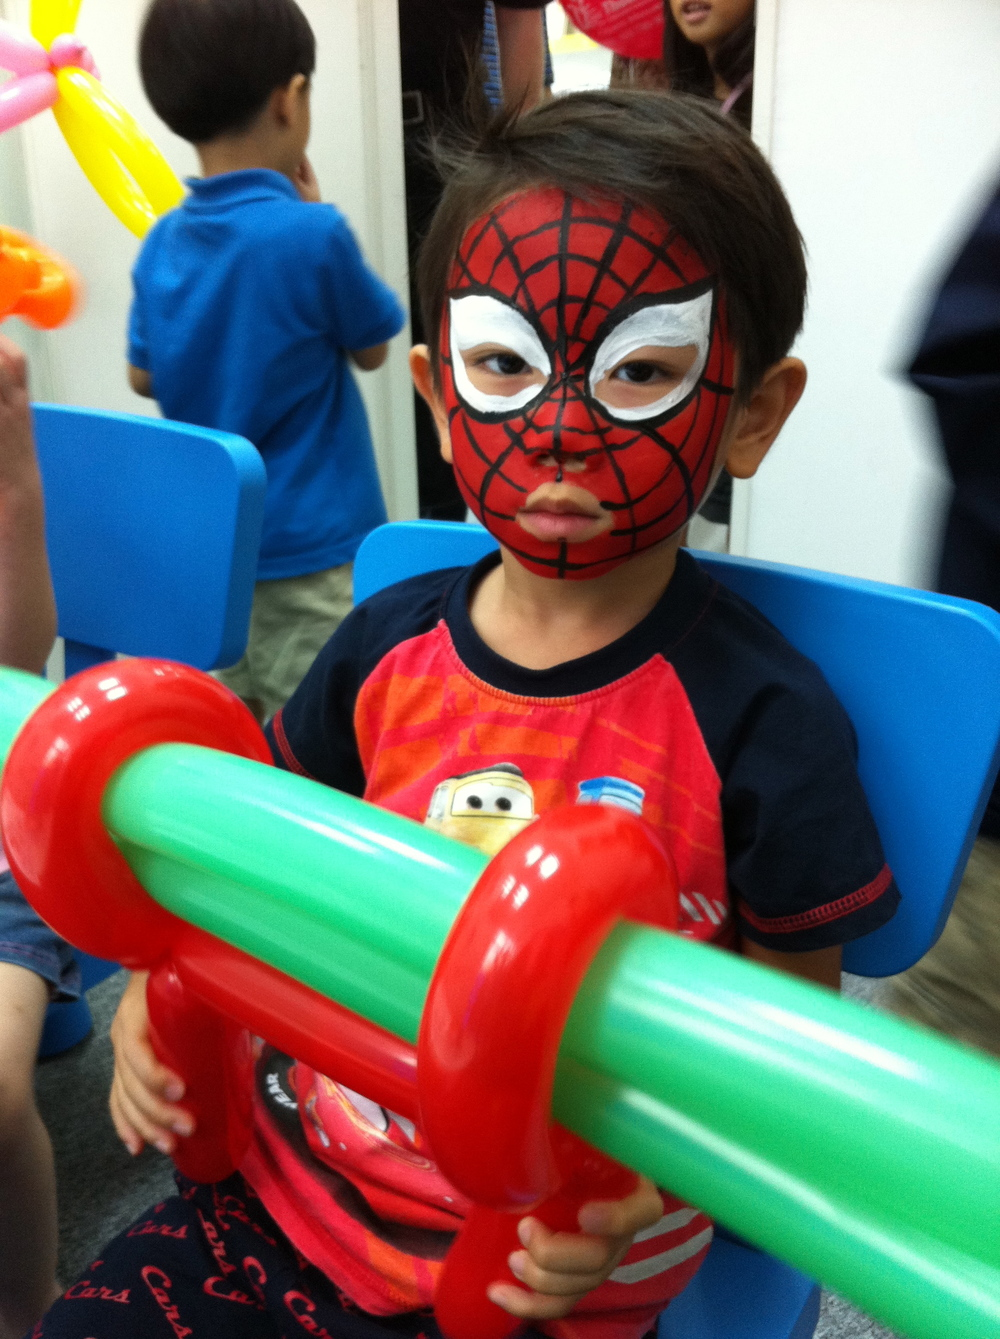 spiderman_facepaint.jpg